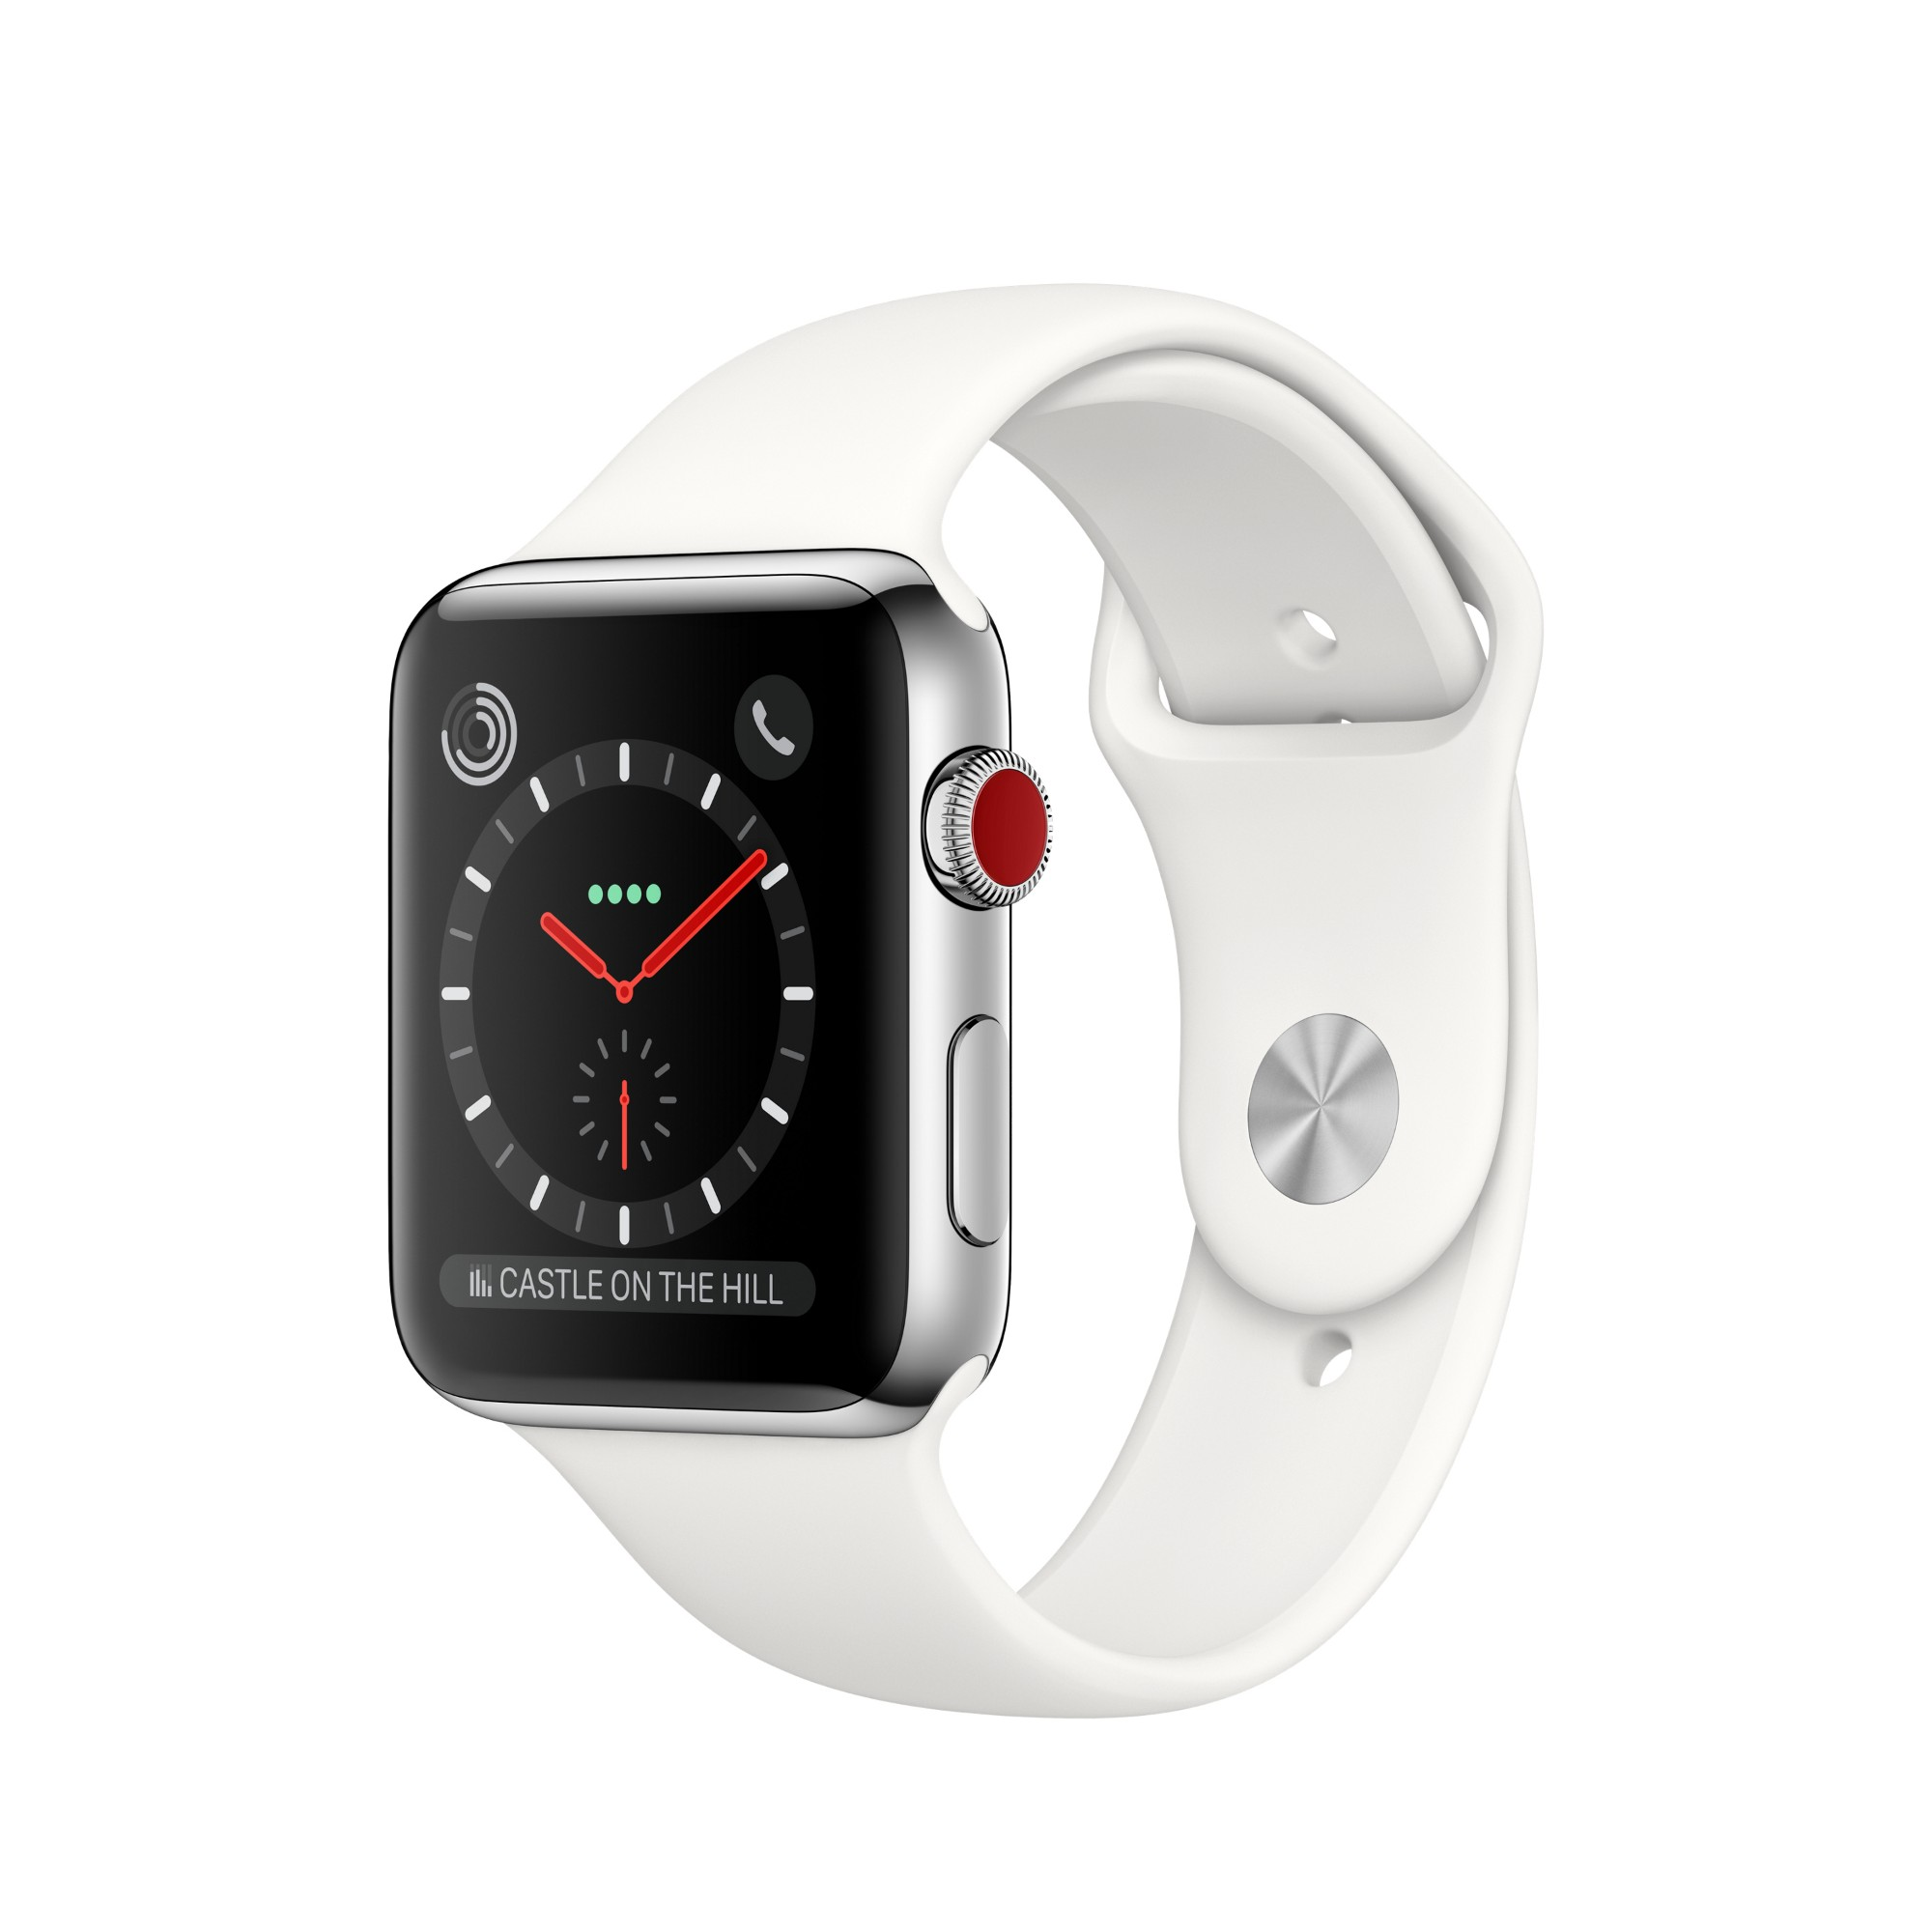 Watch Series 3 (gps + Cellular) - 42 Mm - Stainless Steel - Smart Watch With Sport Band (MQLY2B/A)